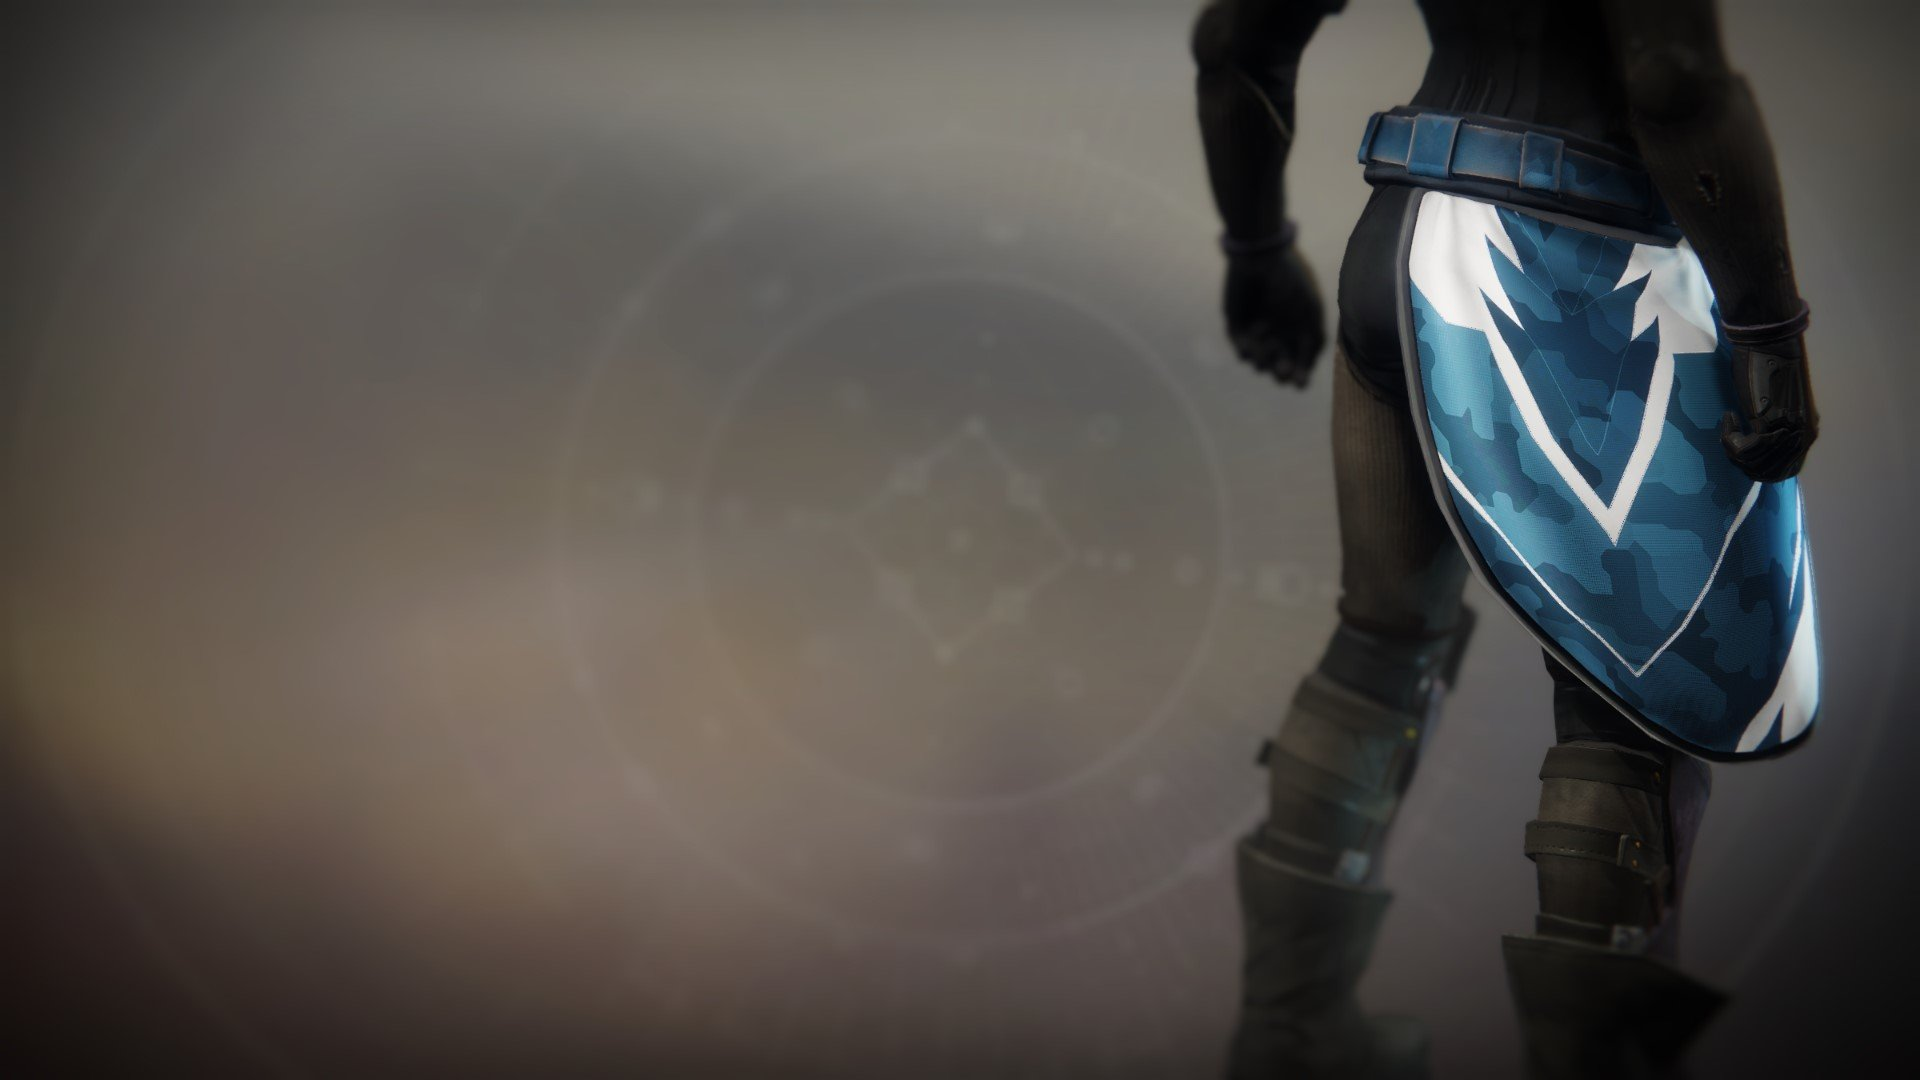 An in-game render of the Mark of the Unassailable.